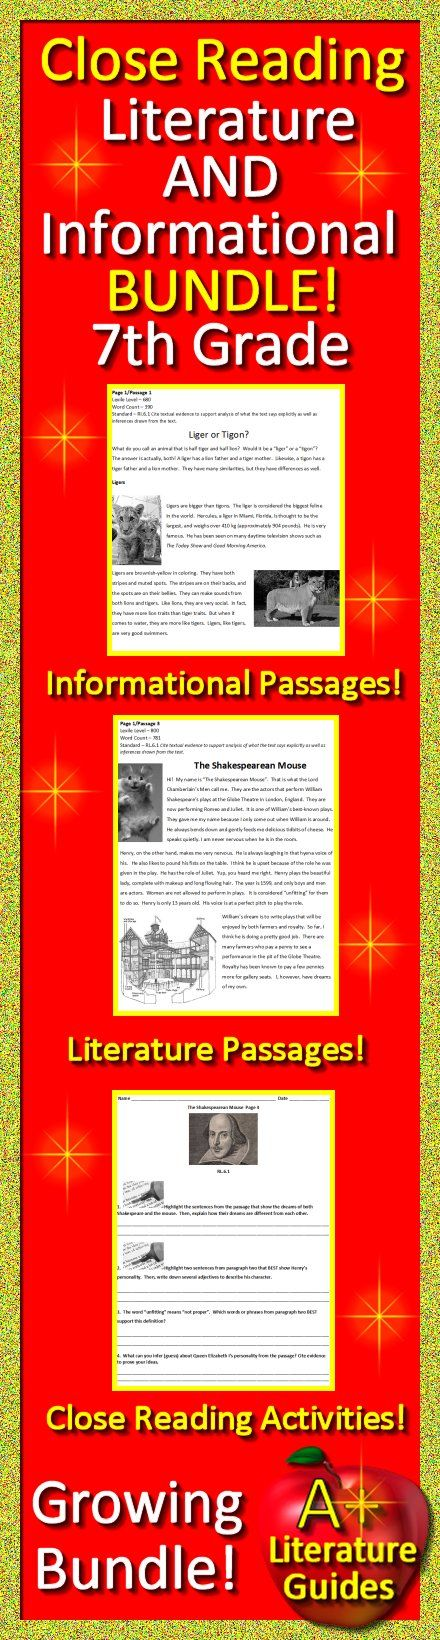 7th Grade Close Reading Informational AND Literature Bundle!  Includes passages AND close reading activities.  Growing Bundle - buy now while price is still low!